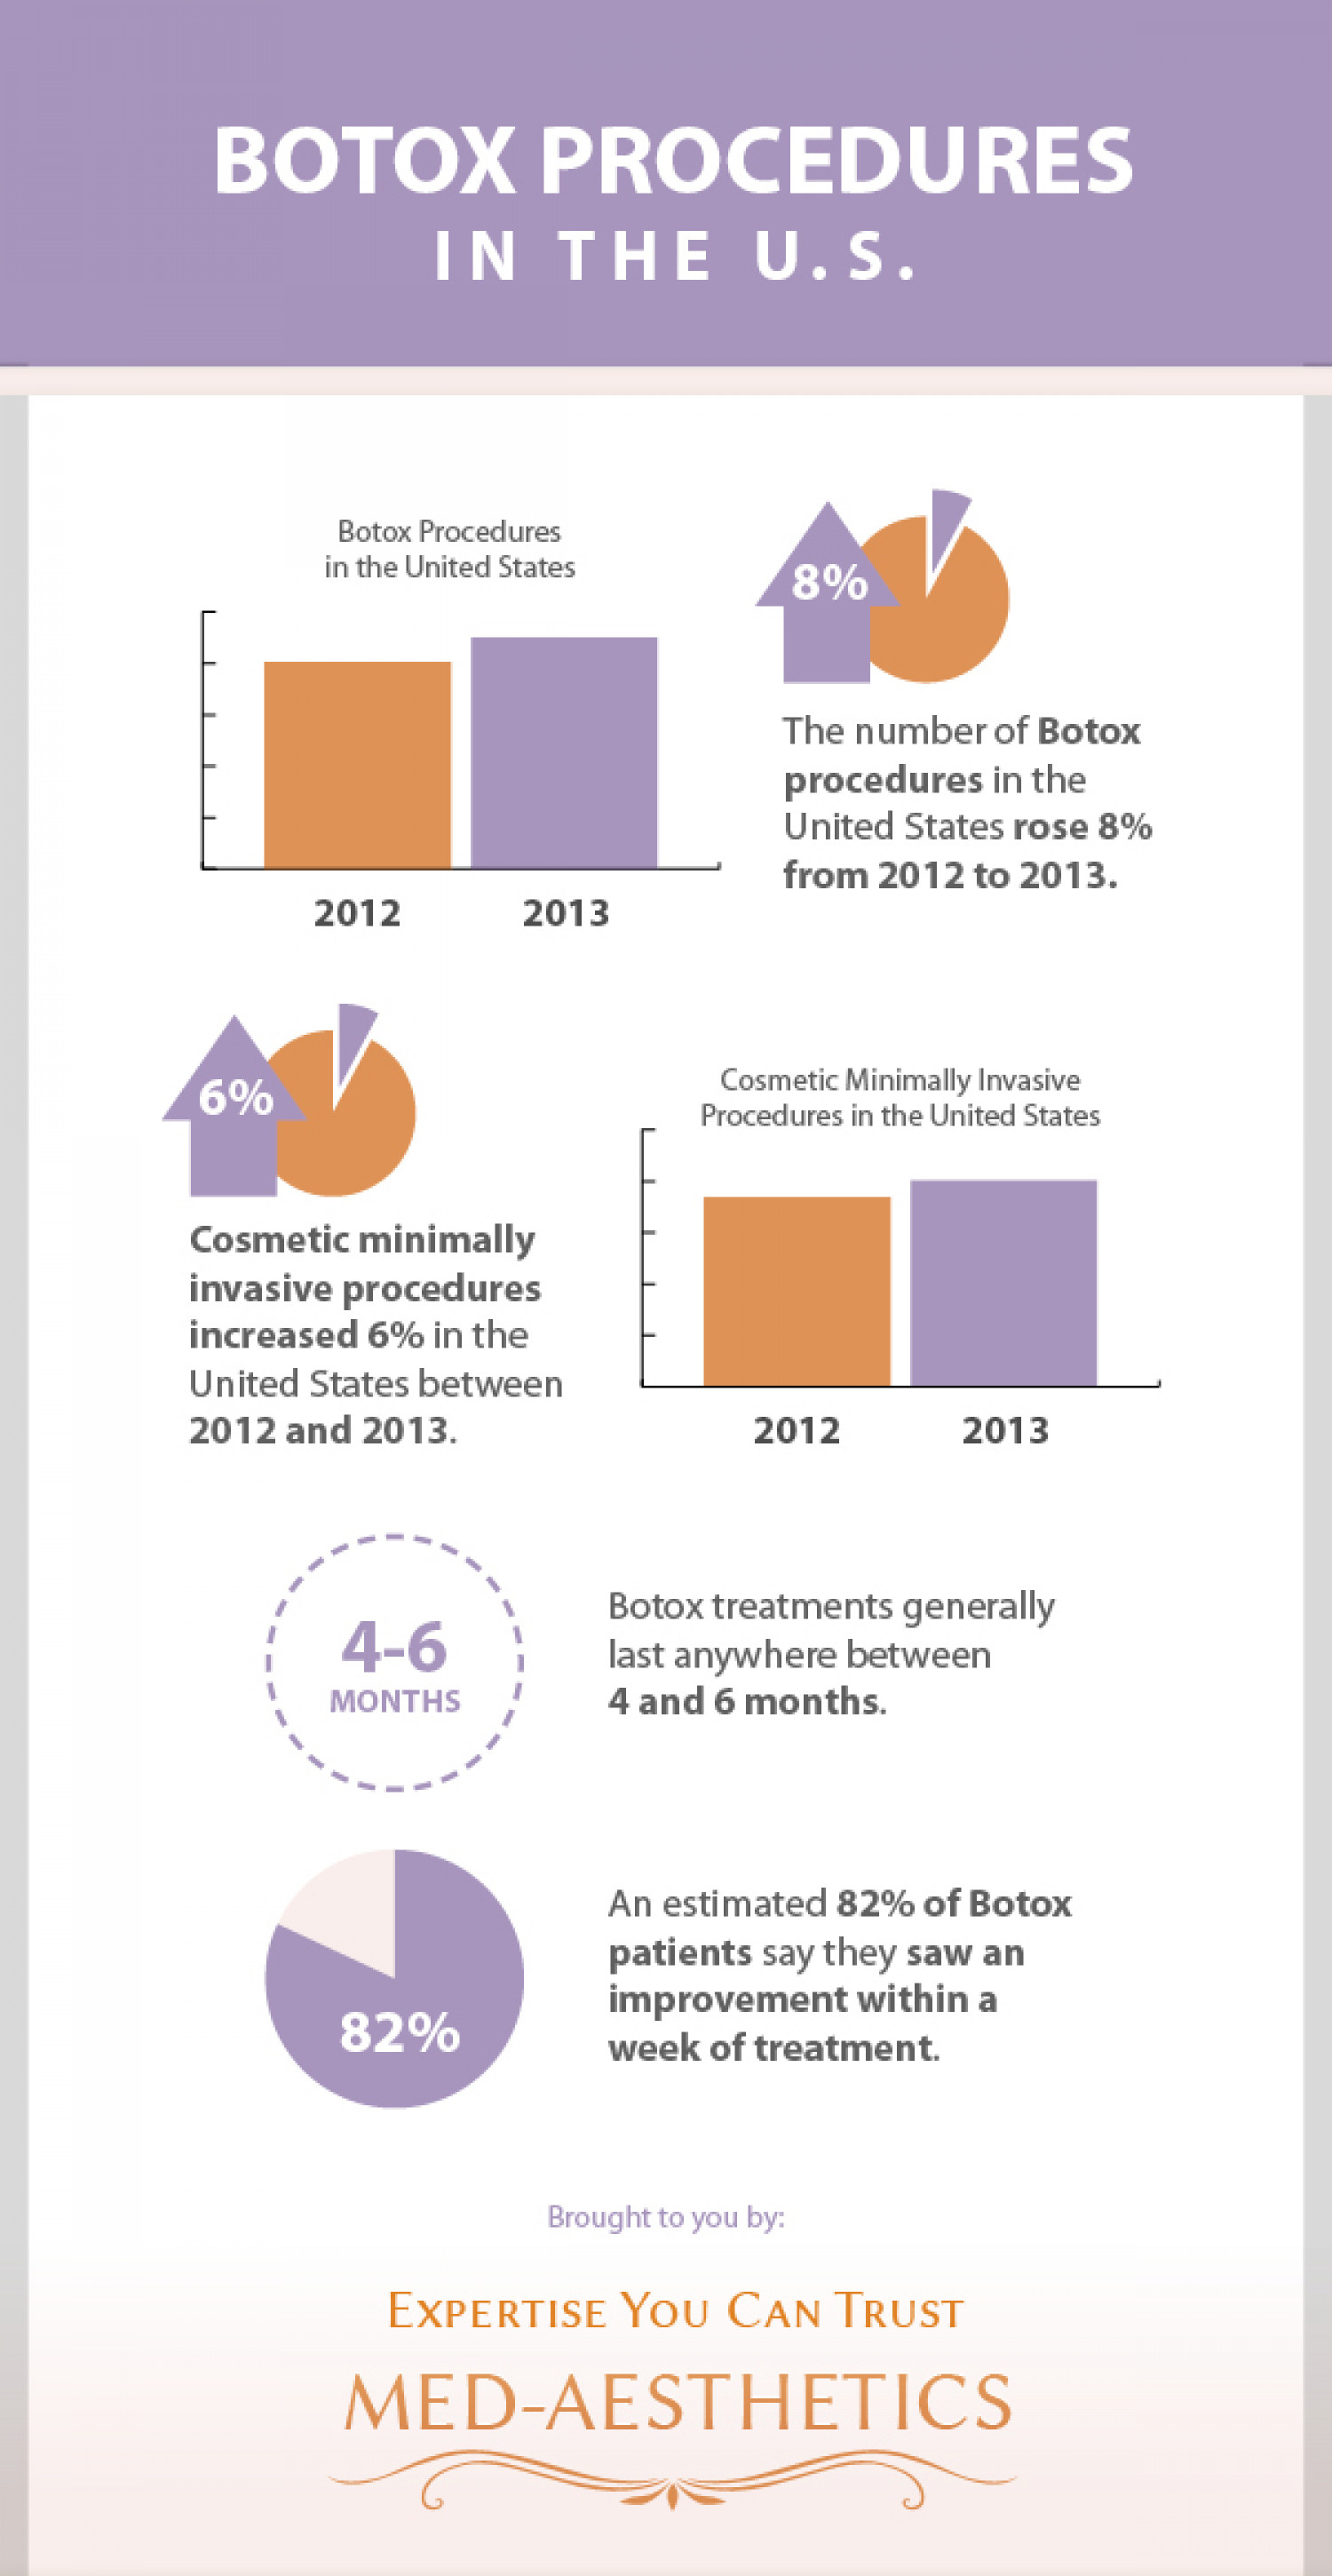 Botox Procedures in the U.S. Infographic